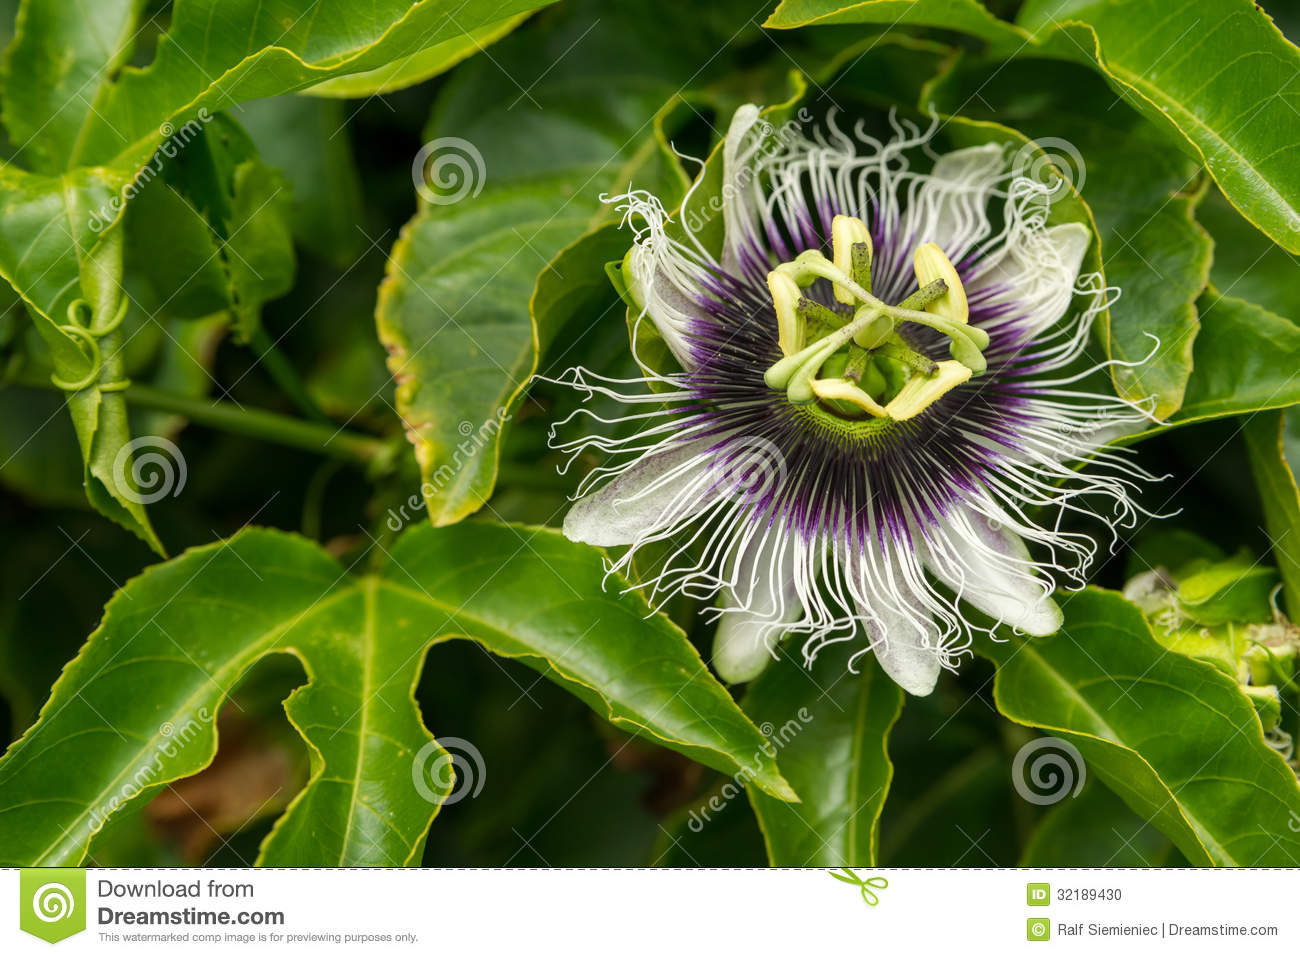 Passiflora Edulis Passiflora Edulis Stock Photo Image Of Horizontal Ingles